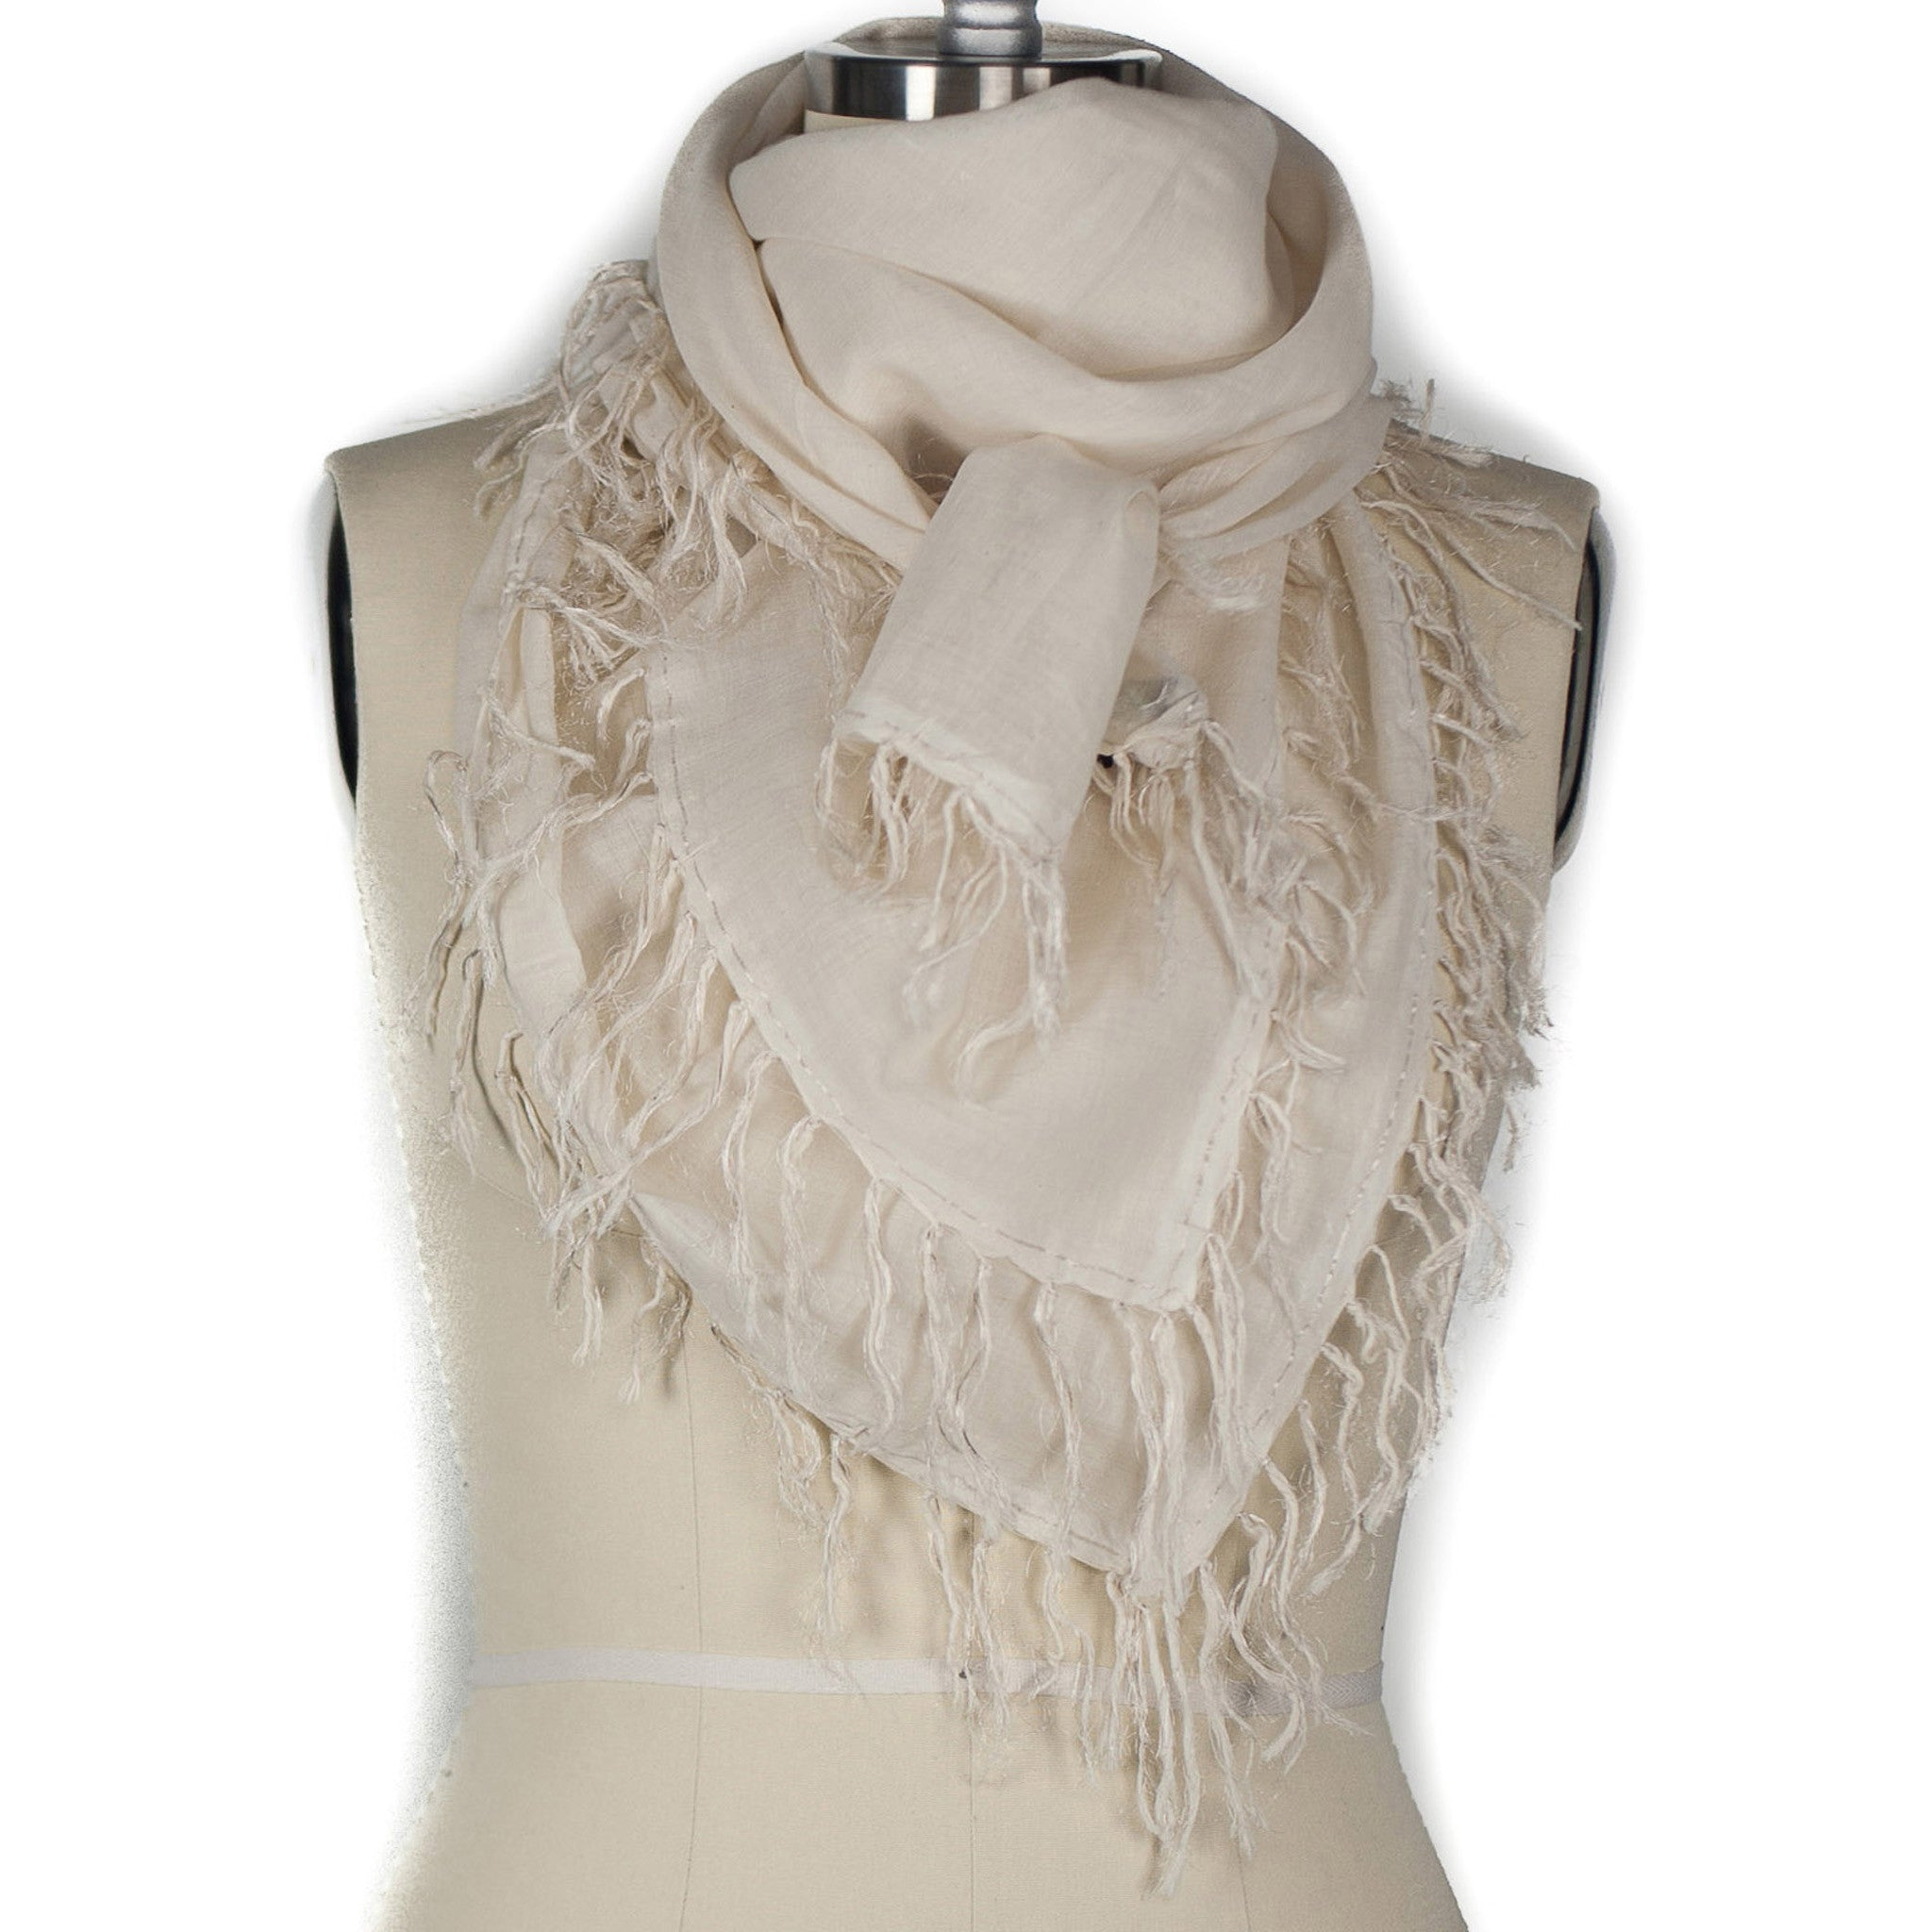 4 Sided Fringe Scarf - Sliver/Tan